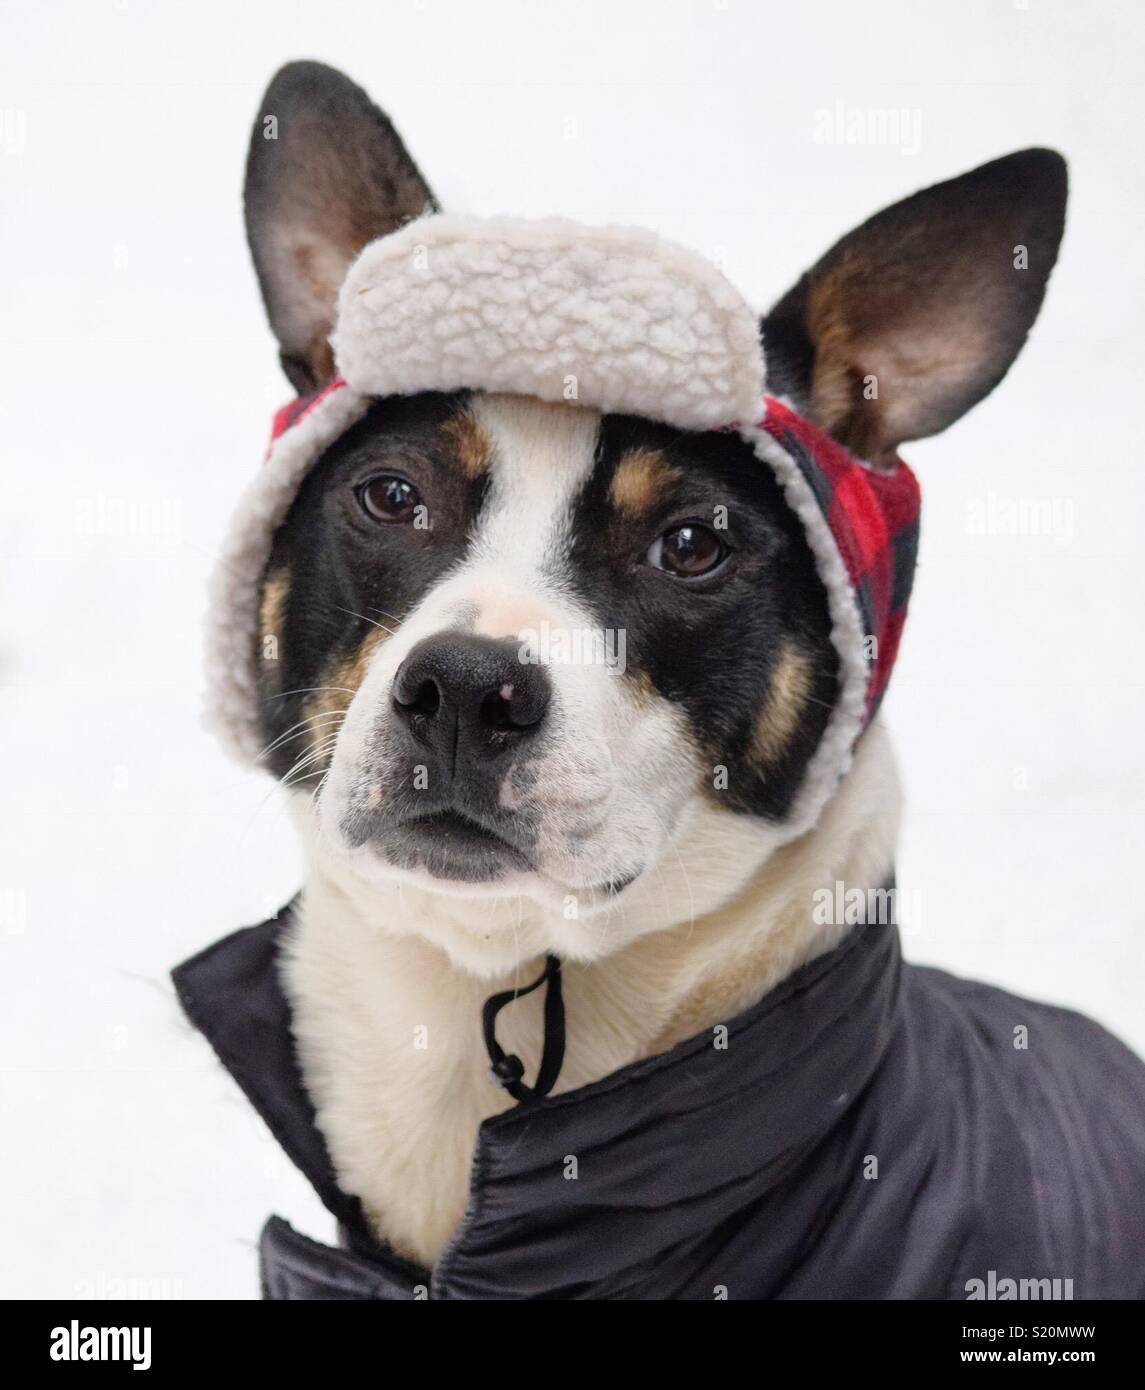 In this delightful portrait of a big-ratted pup wearing a red plaid cap, the poor dog looks none too pleased. - Stock Image